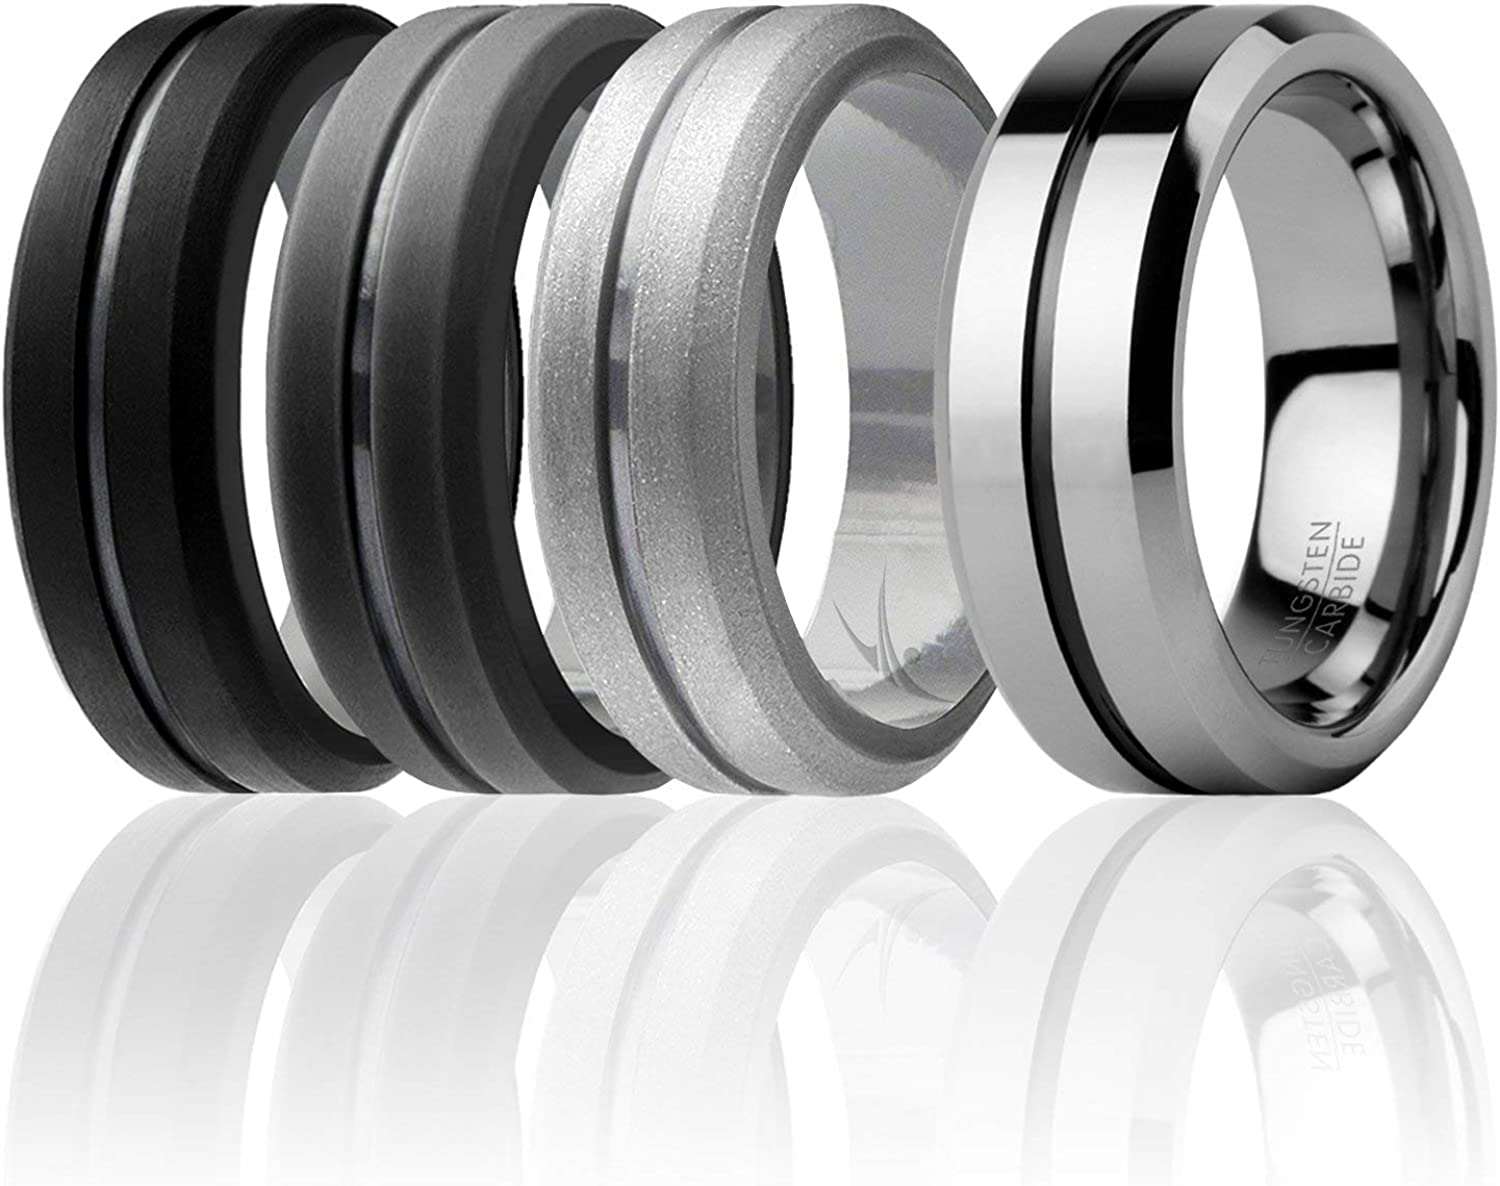 3 Silicone /& 1 Tungsten Carbide Wedding Rings for Men ROQ Engraved Middle Line Style 4 Pack Tungsten Carbide Band for Special Events Mens Silicone Rings for Work//Sport//Hiking